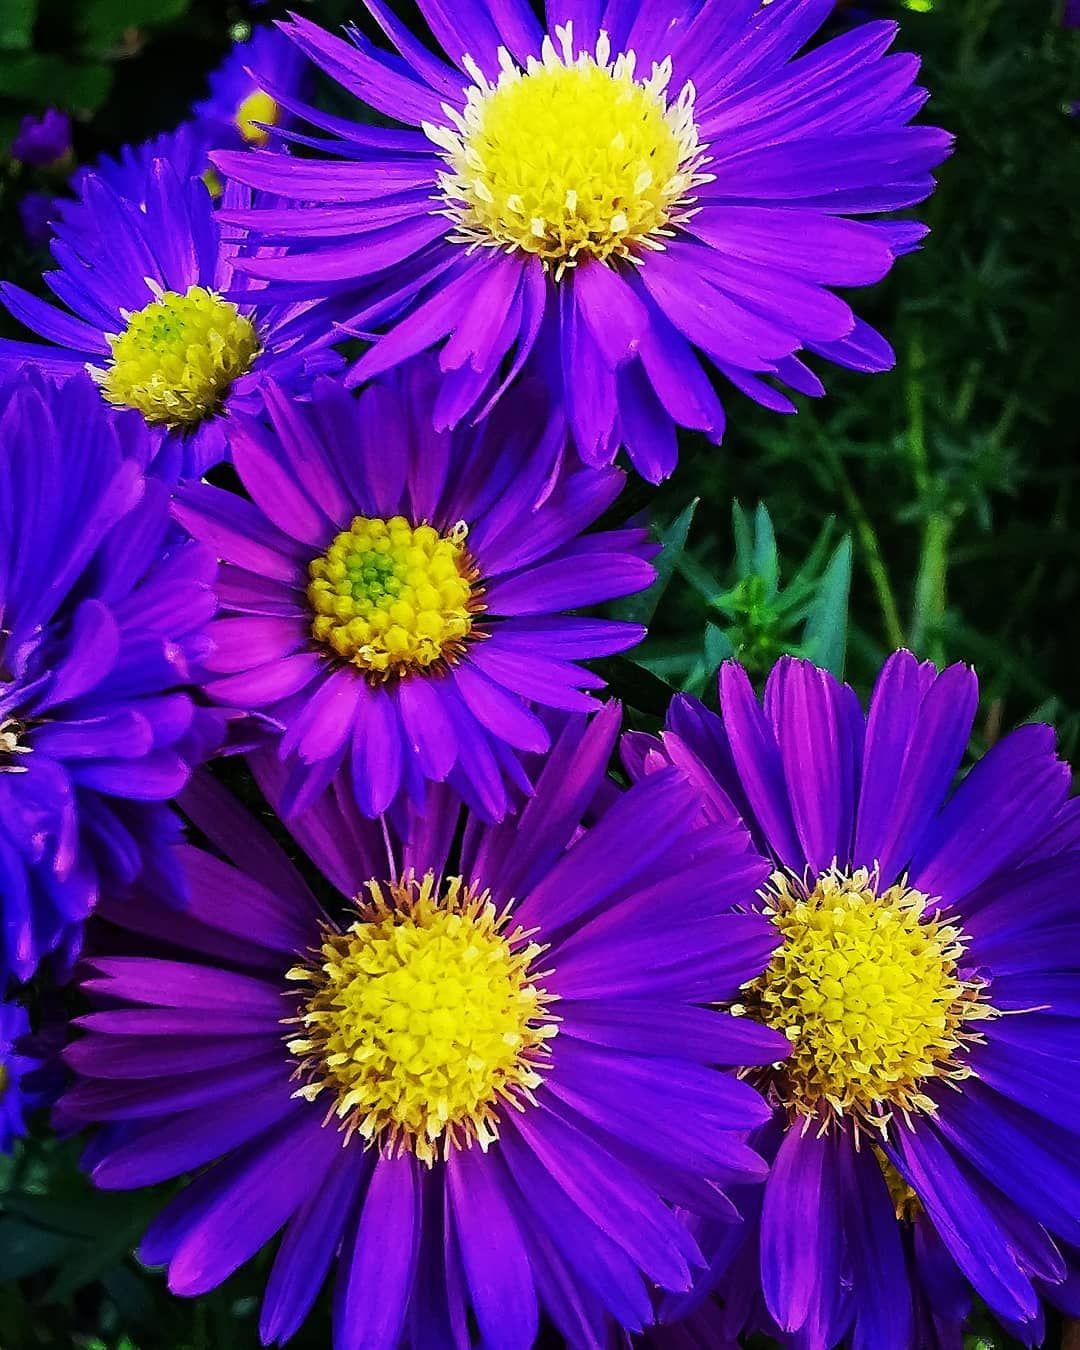 Pin By Nana On Flowers Aster Flower Best Flower Pictures Flowers Photography